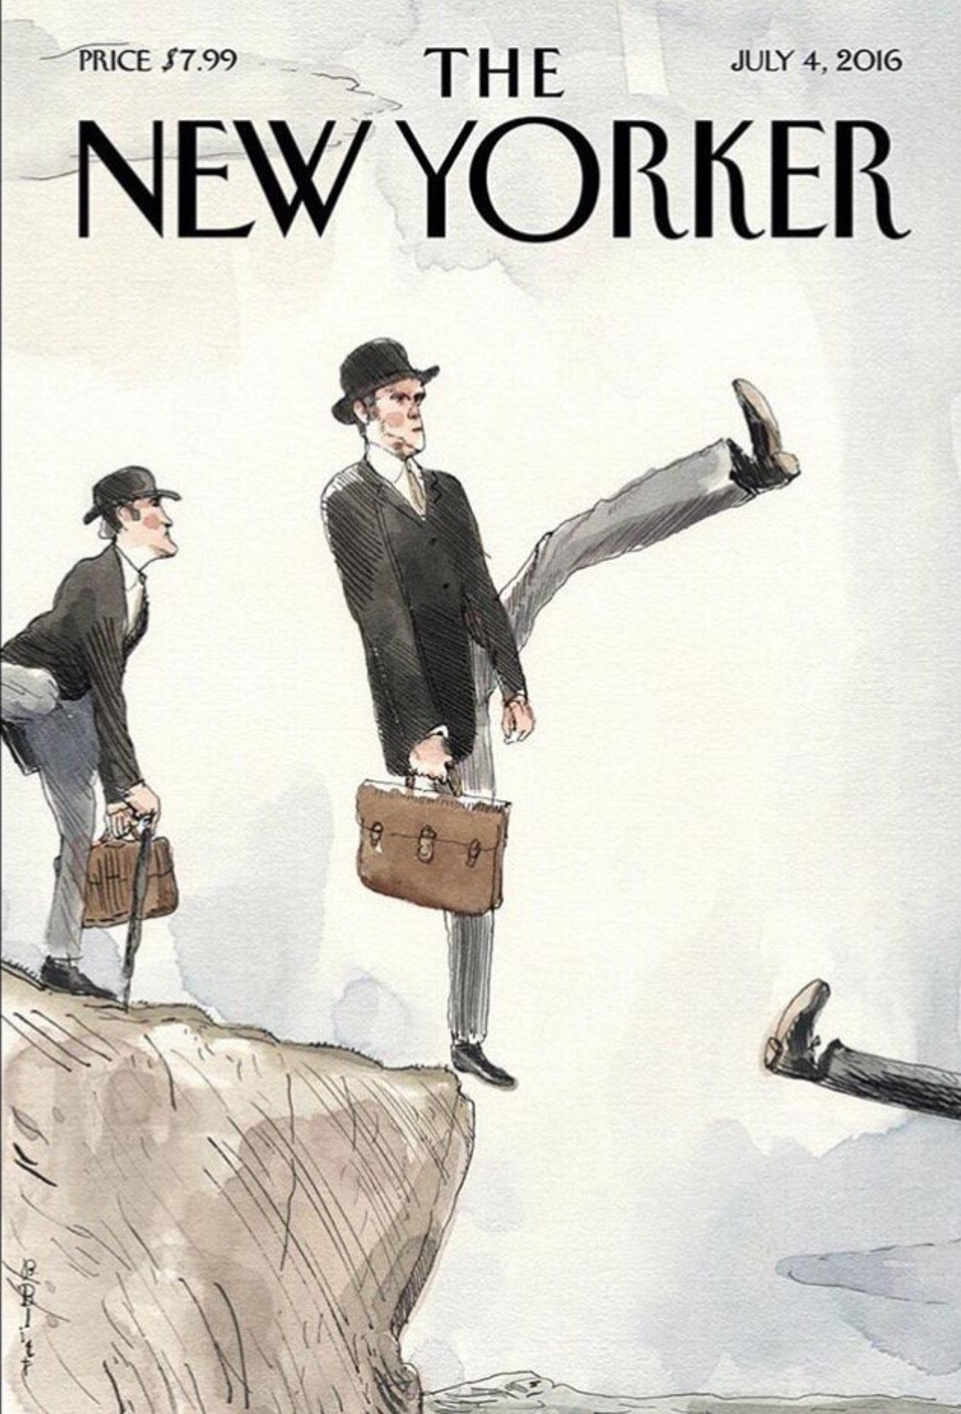 ©  Barry Blitt / New Yorker